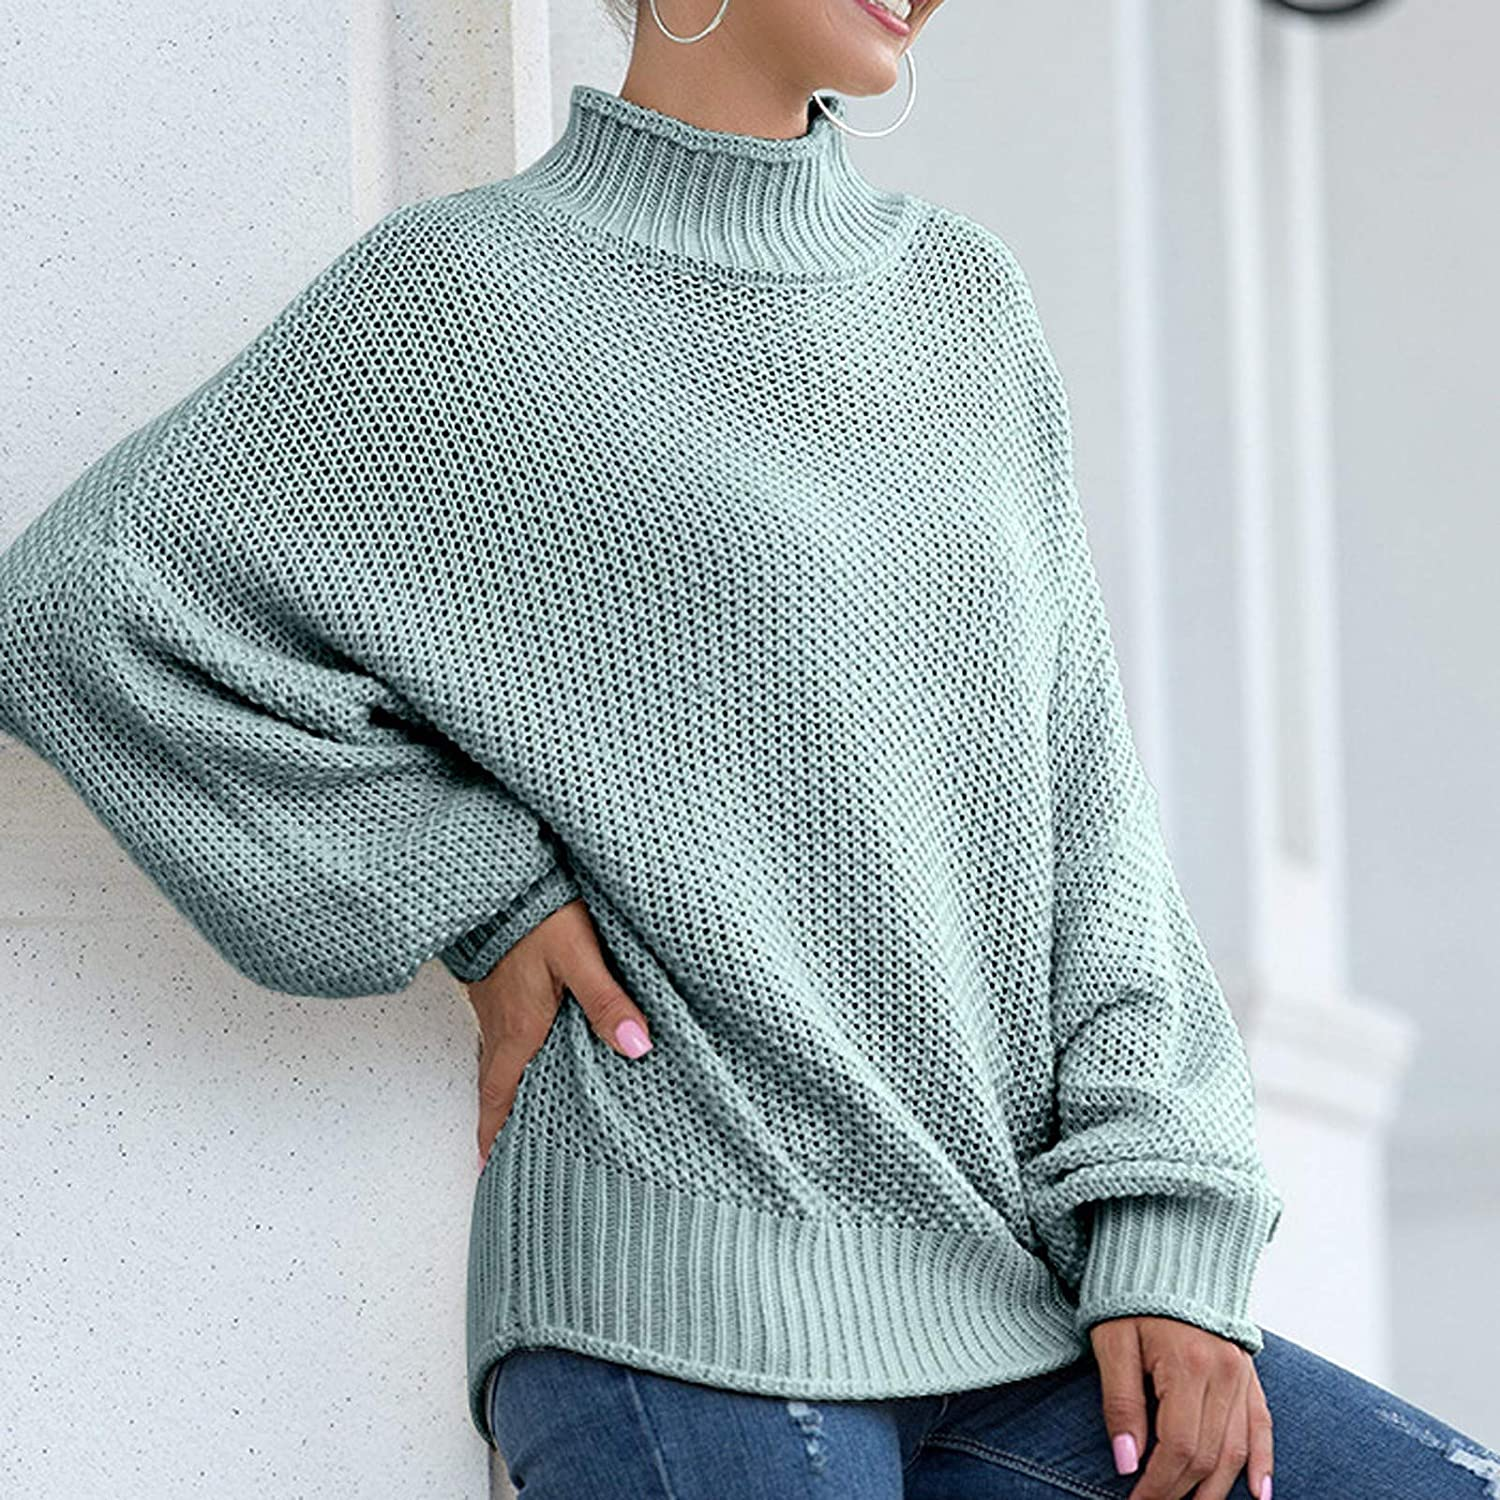 FABIURT Sweaters for Women, Womens Turtleneck Chunky Knit Pullover Sweater Long Sleeve Oversized Loose Jumper Blouse Tops